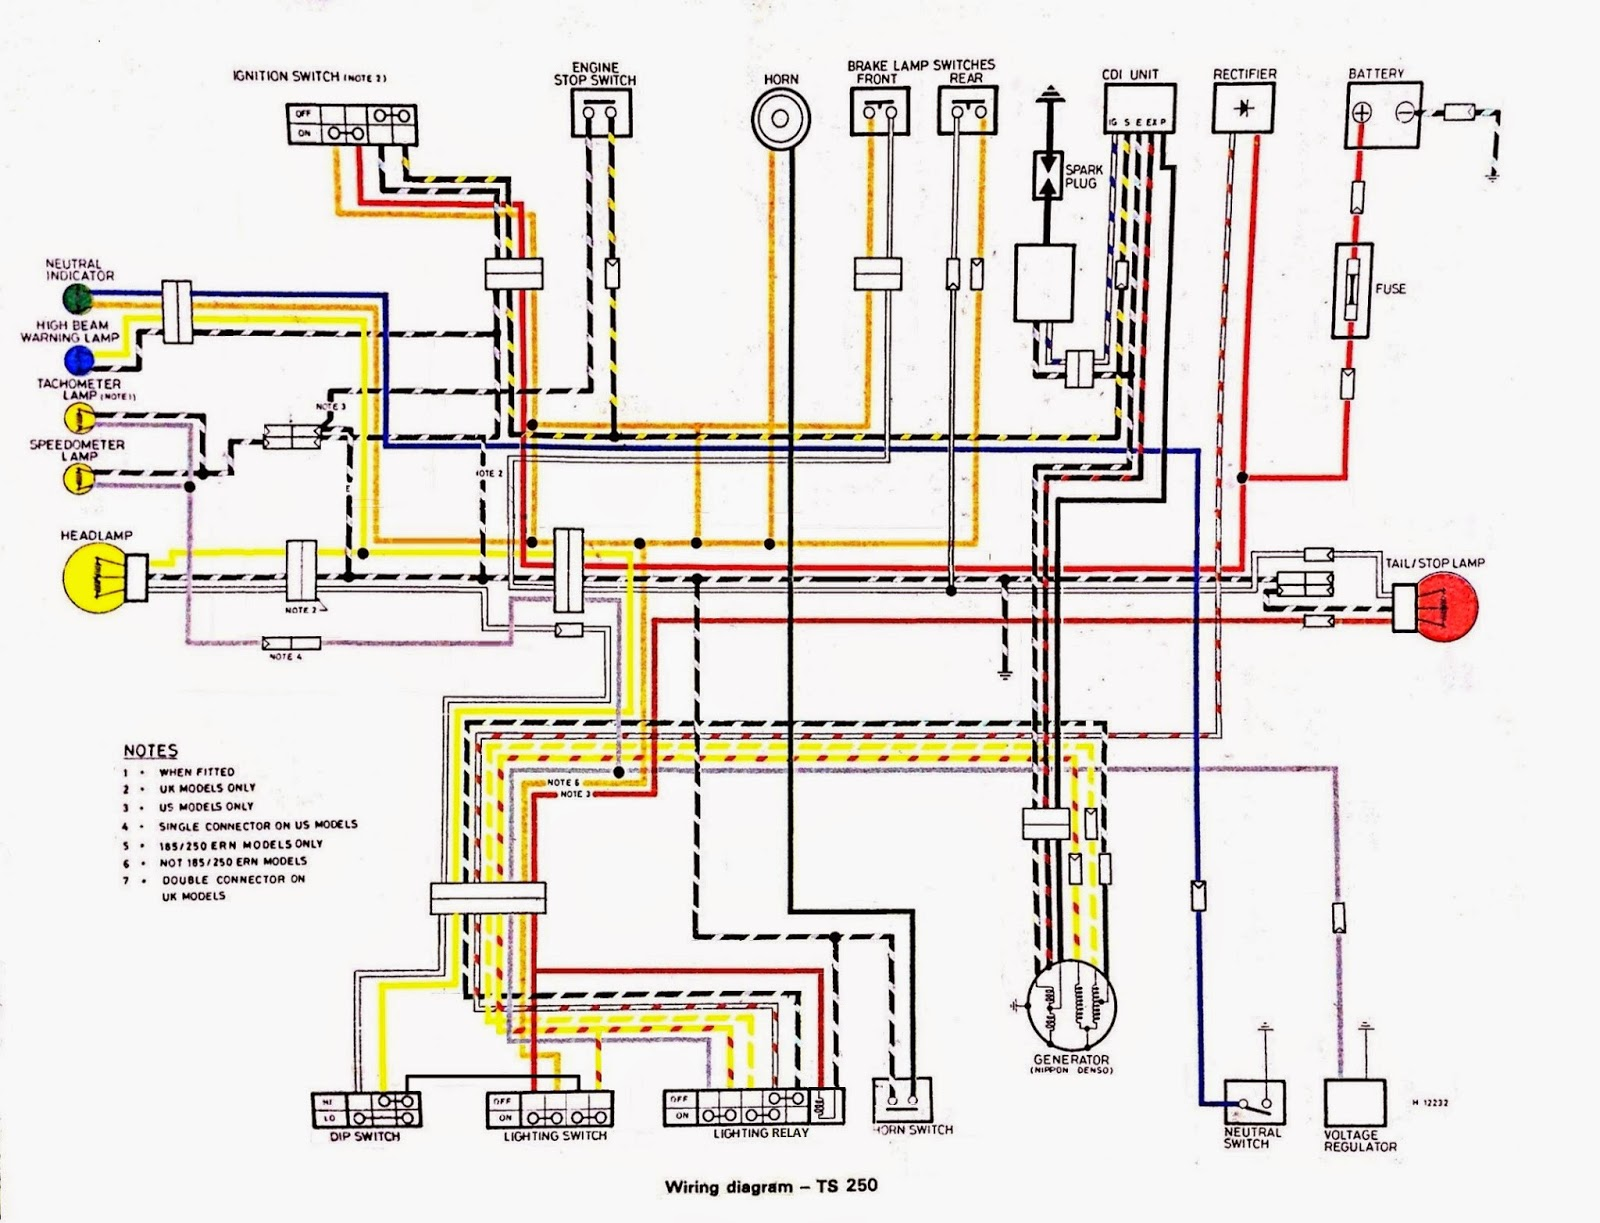 maruti car wiring diagram images gallery [ 1600 x 1223 Pixel ]